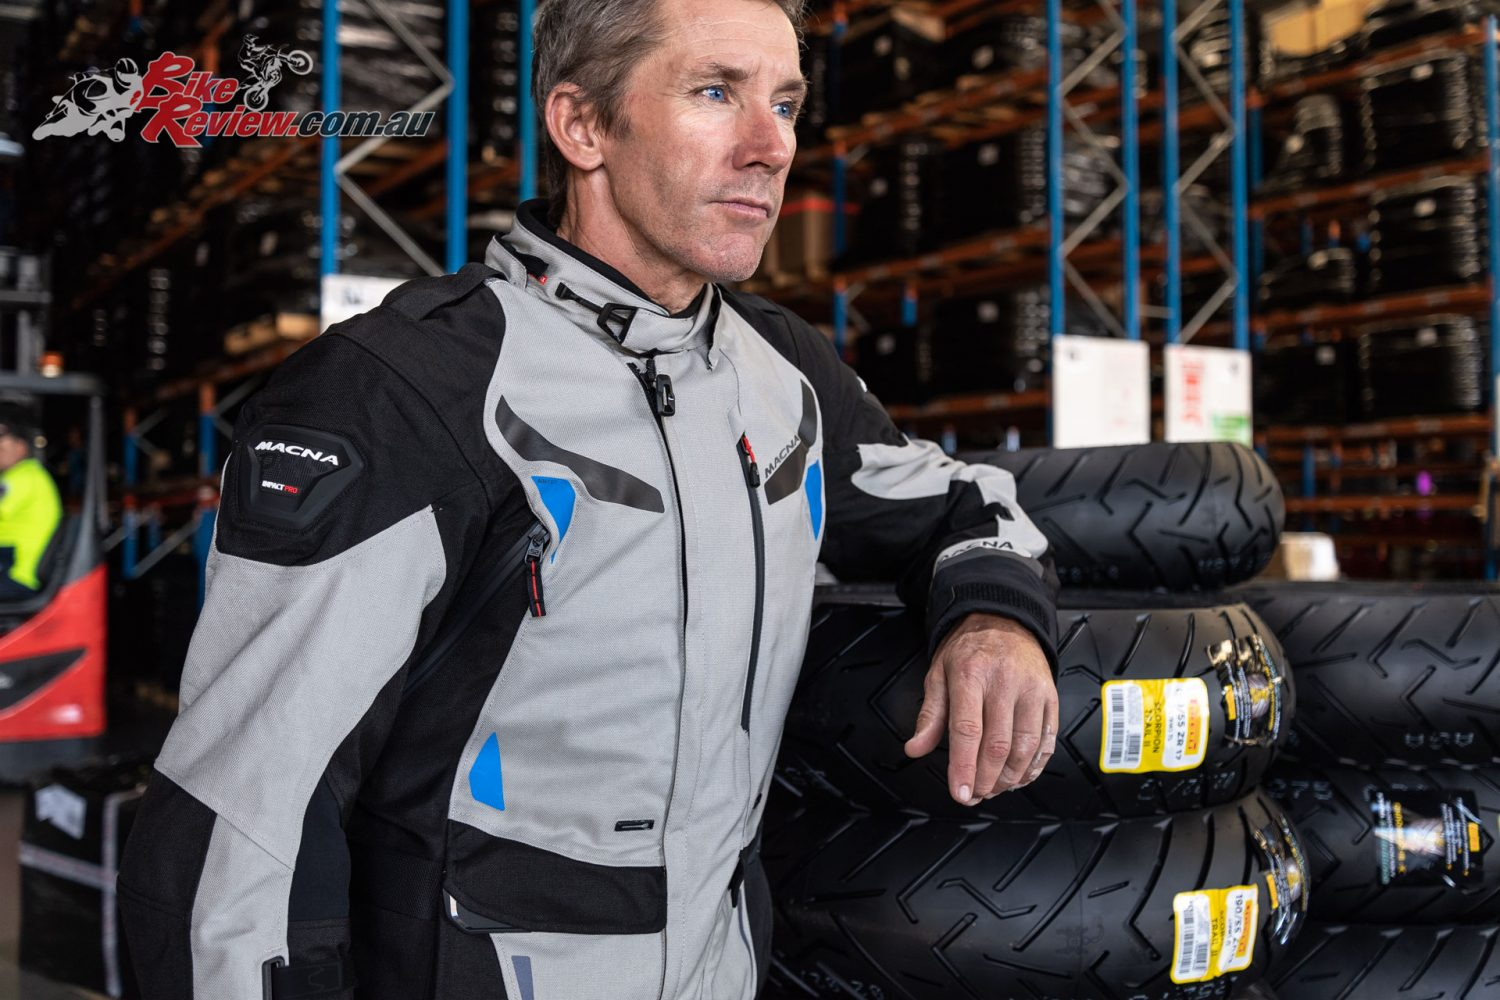 Macna's updated 2018 Core range of motorcycle jackets have been unveiled and is available